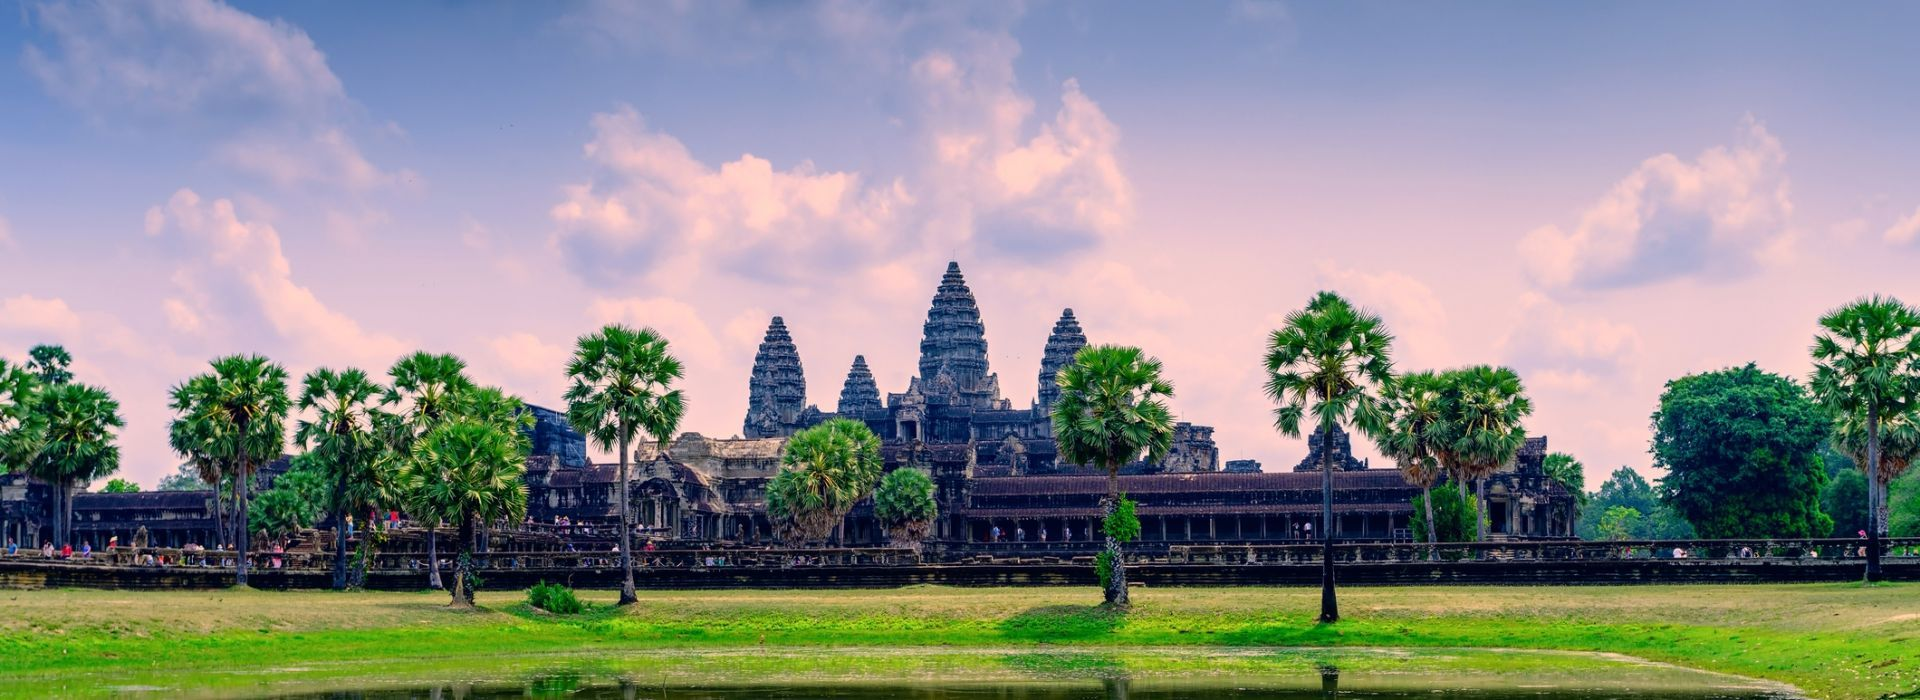 Cultural, religious and historic sites Tours in Cambodia